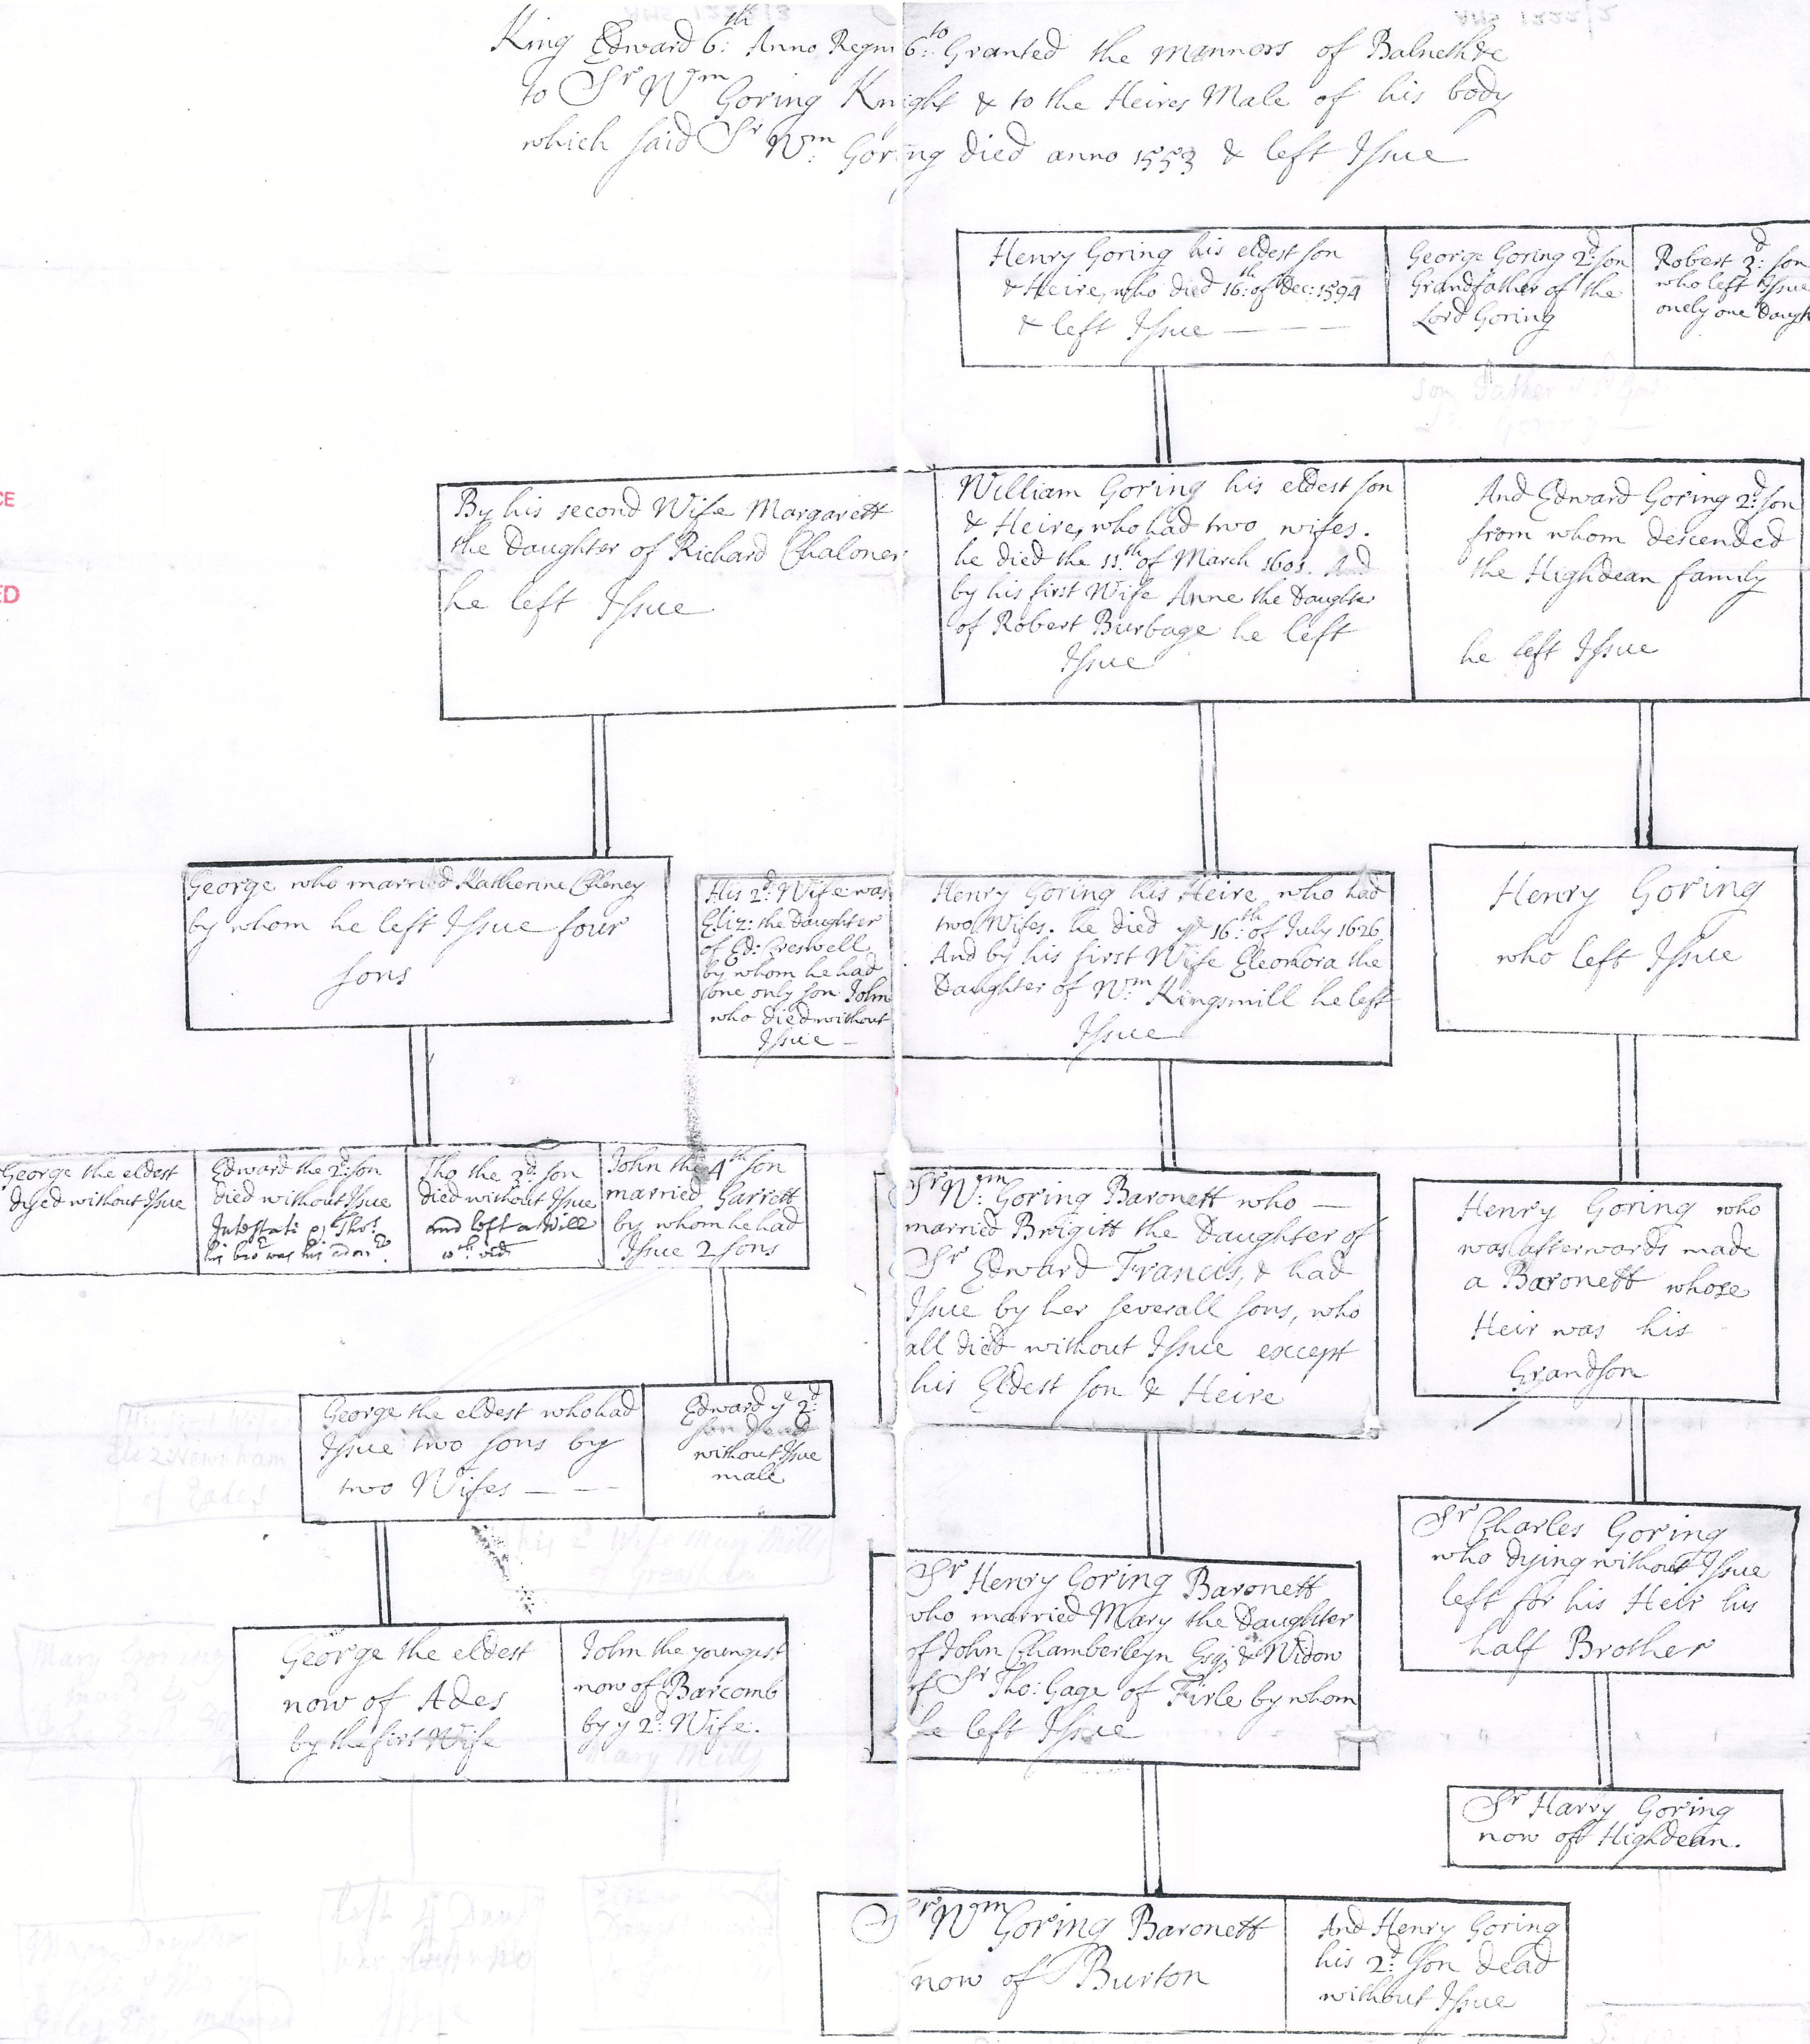 Hand drawn Goring pedigree from Balneath dispute document about 1725